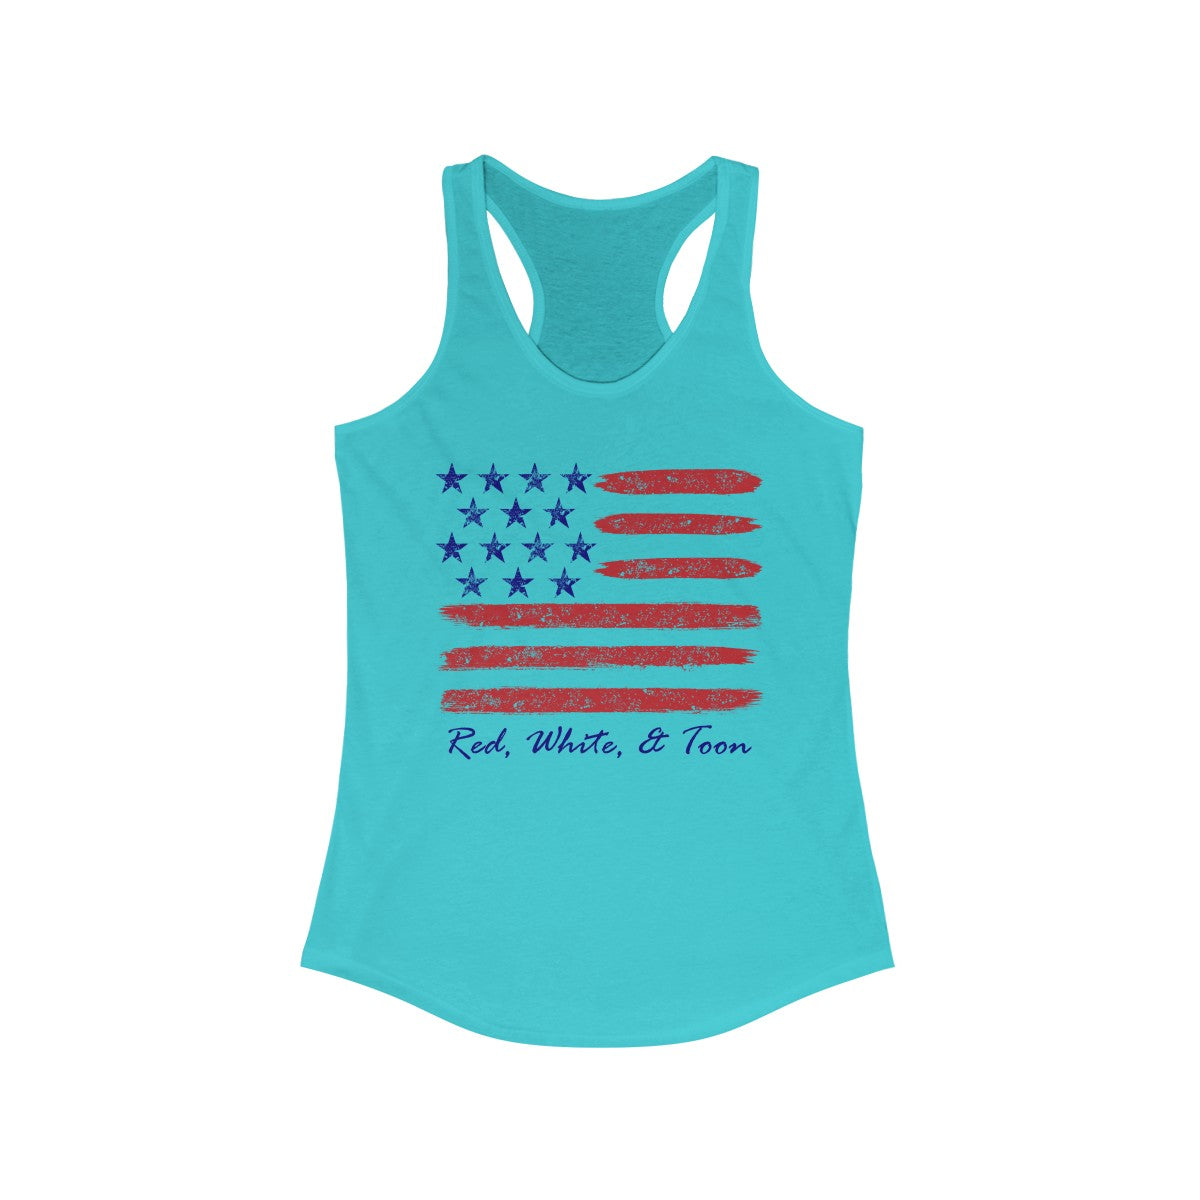 Pontoon Girl - Red White and Toon - Contemporary Flag Racerback Tank Top